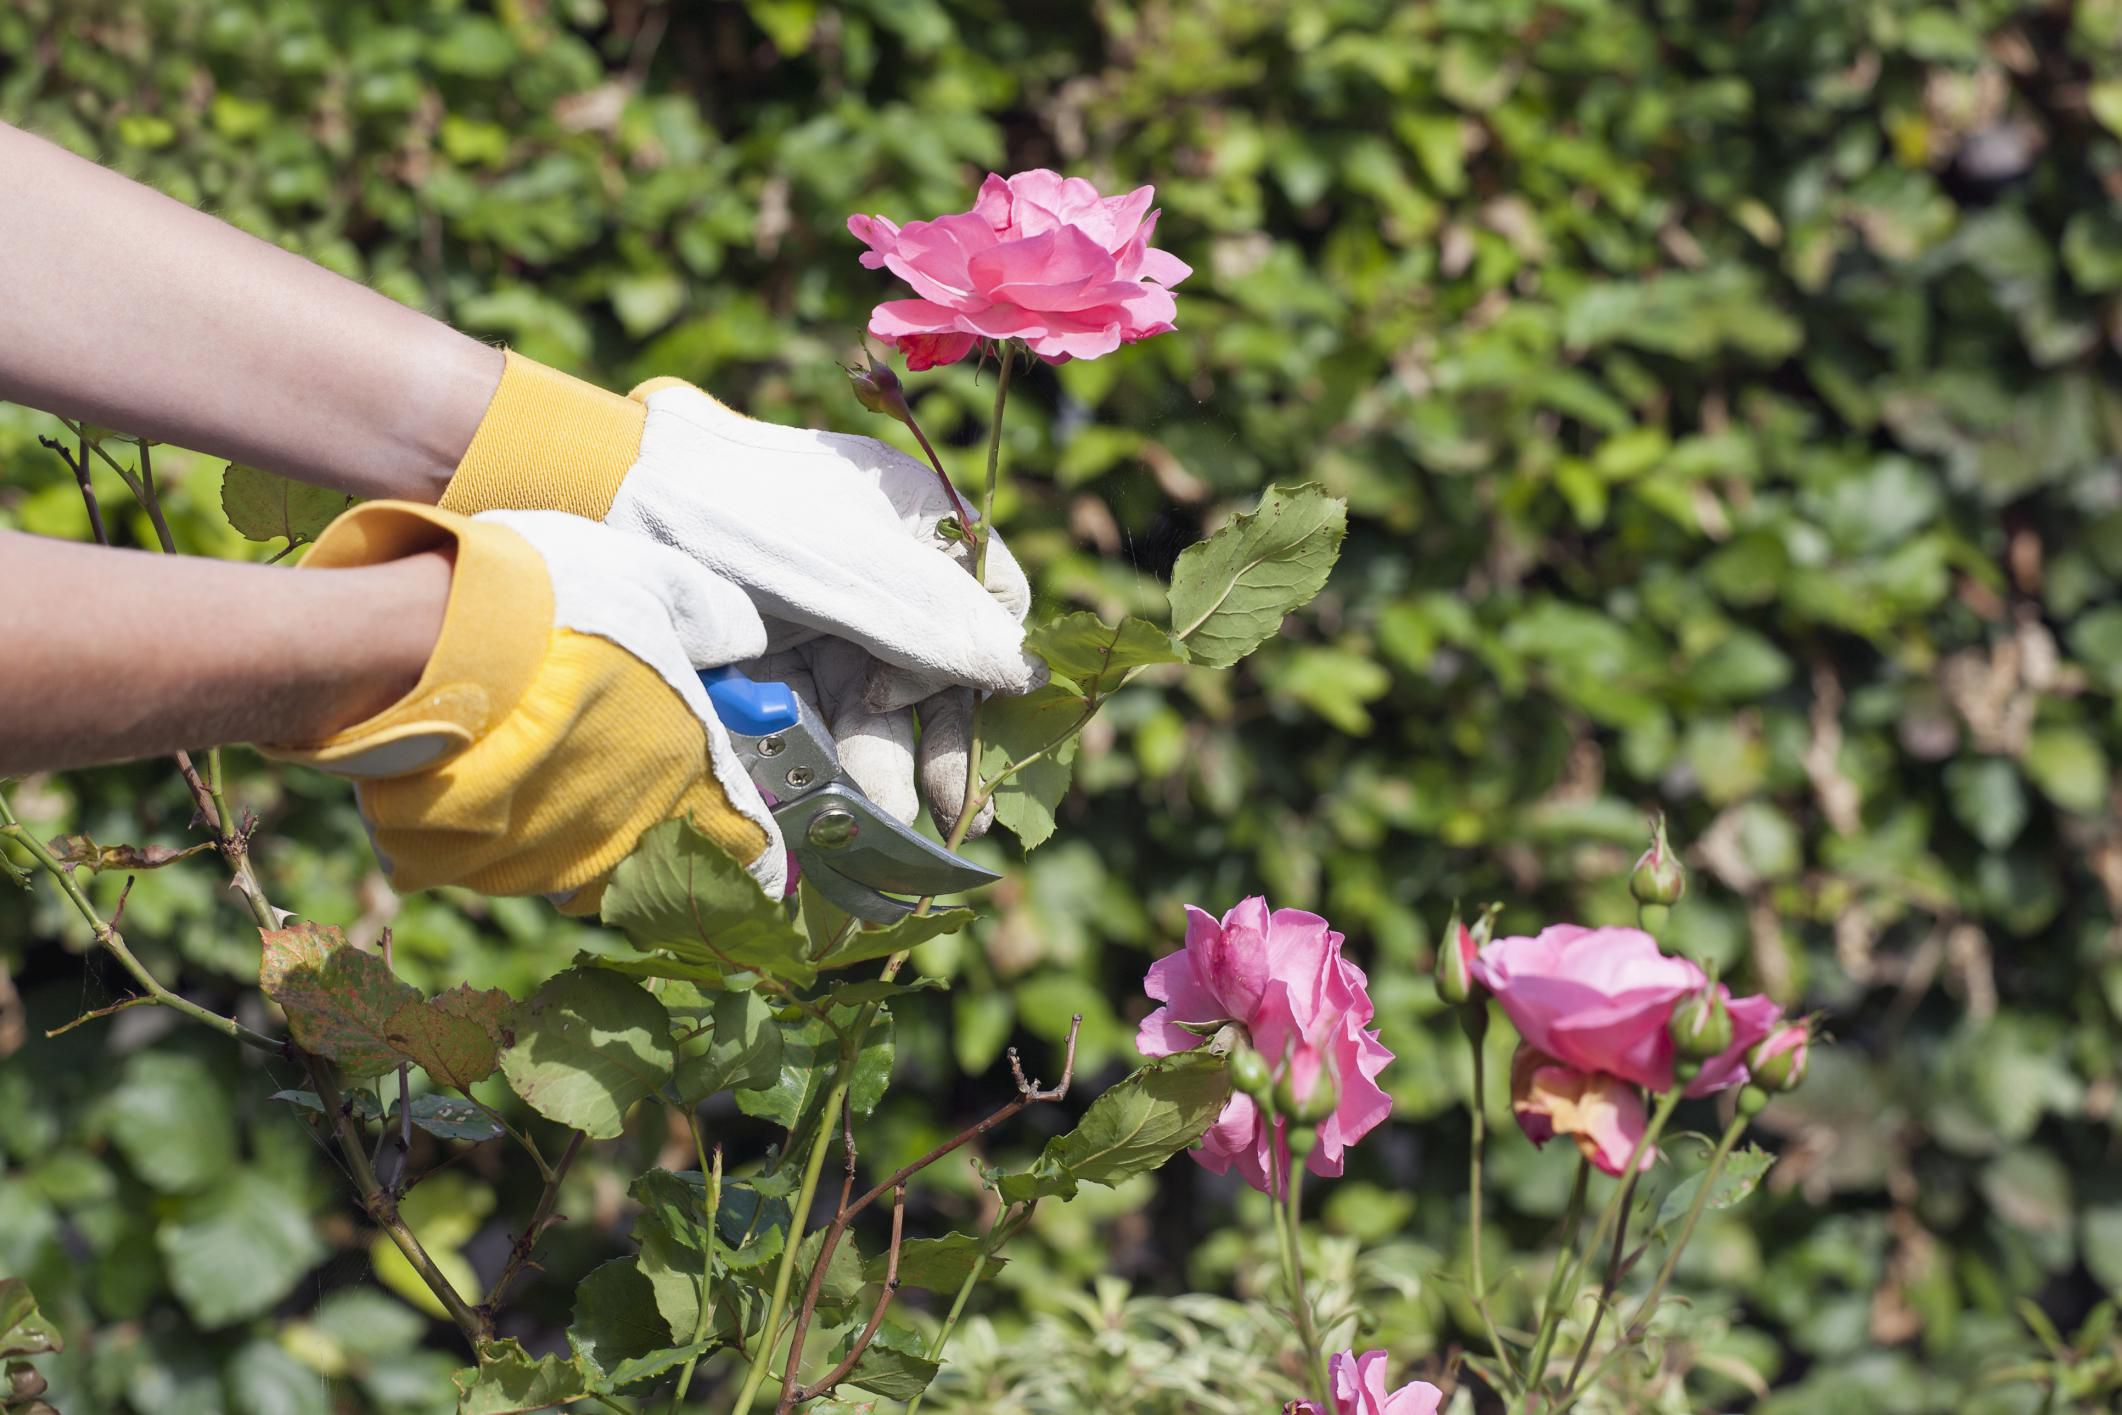 How to trim a rose bush - This Guide To Pruning Will Make Rose Care Much Less Intimidating